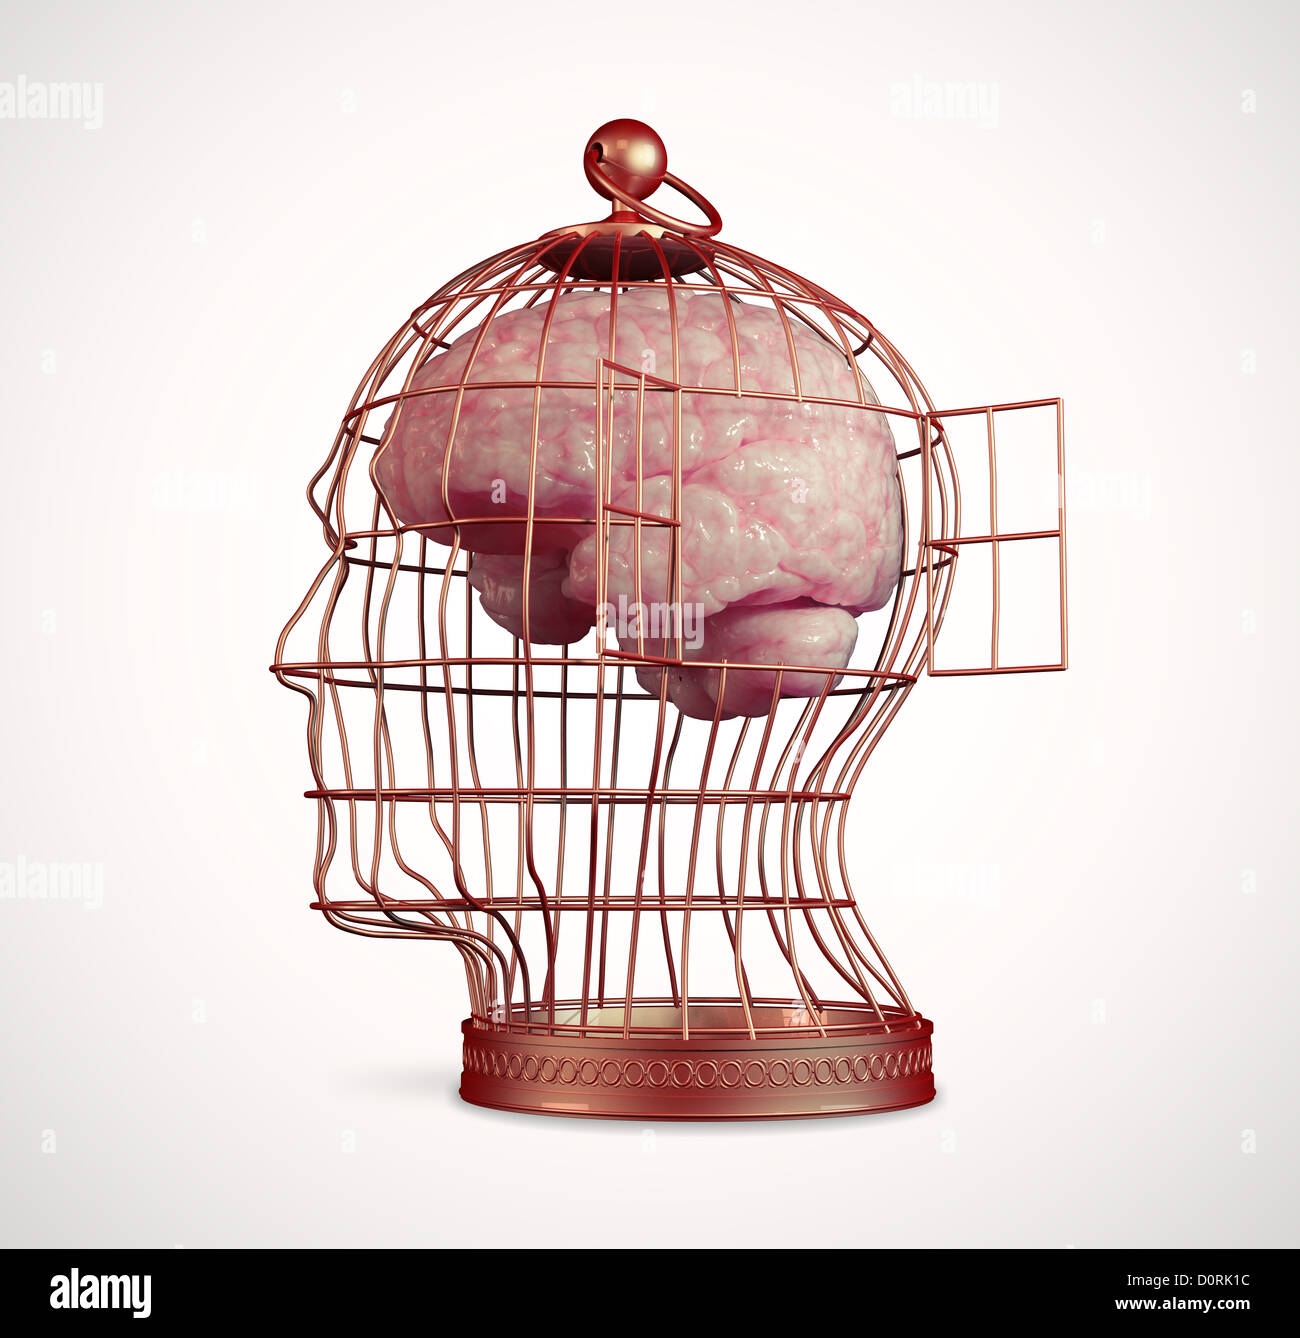 Brain inside a cage - Stock Image